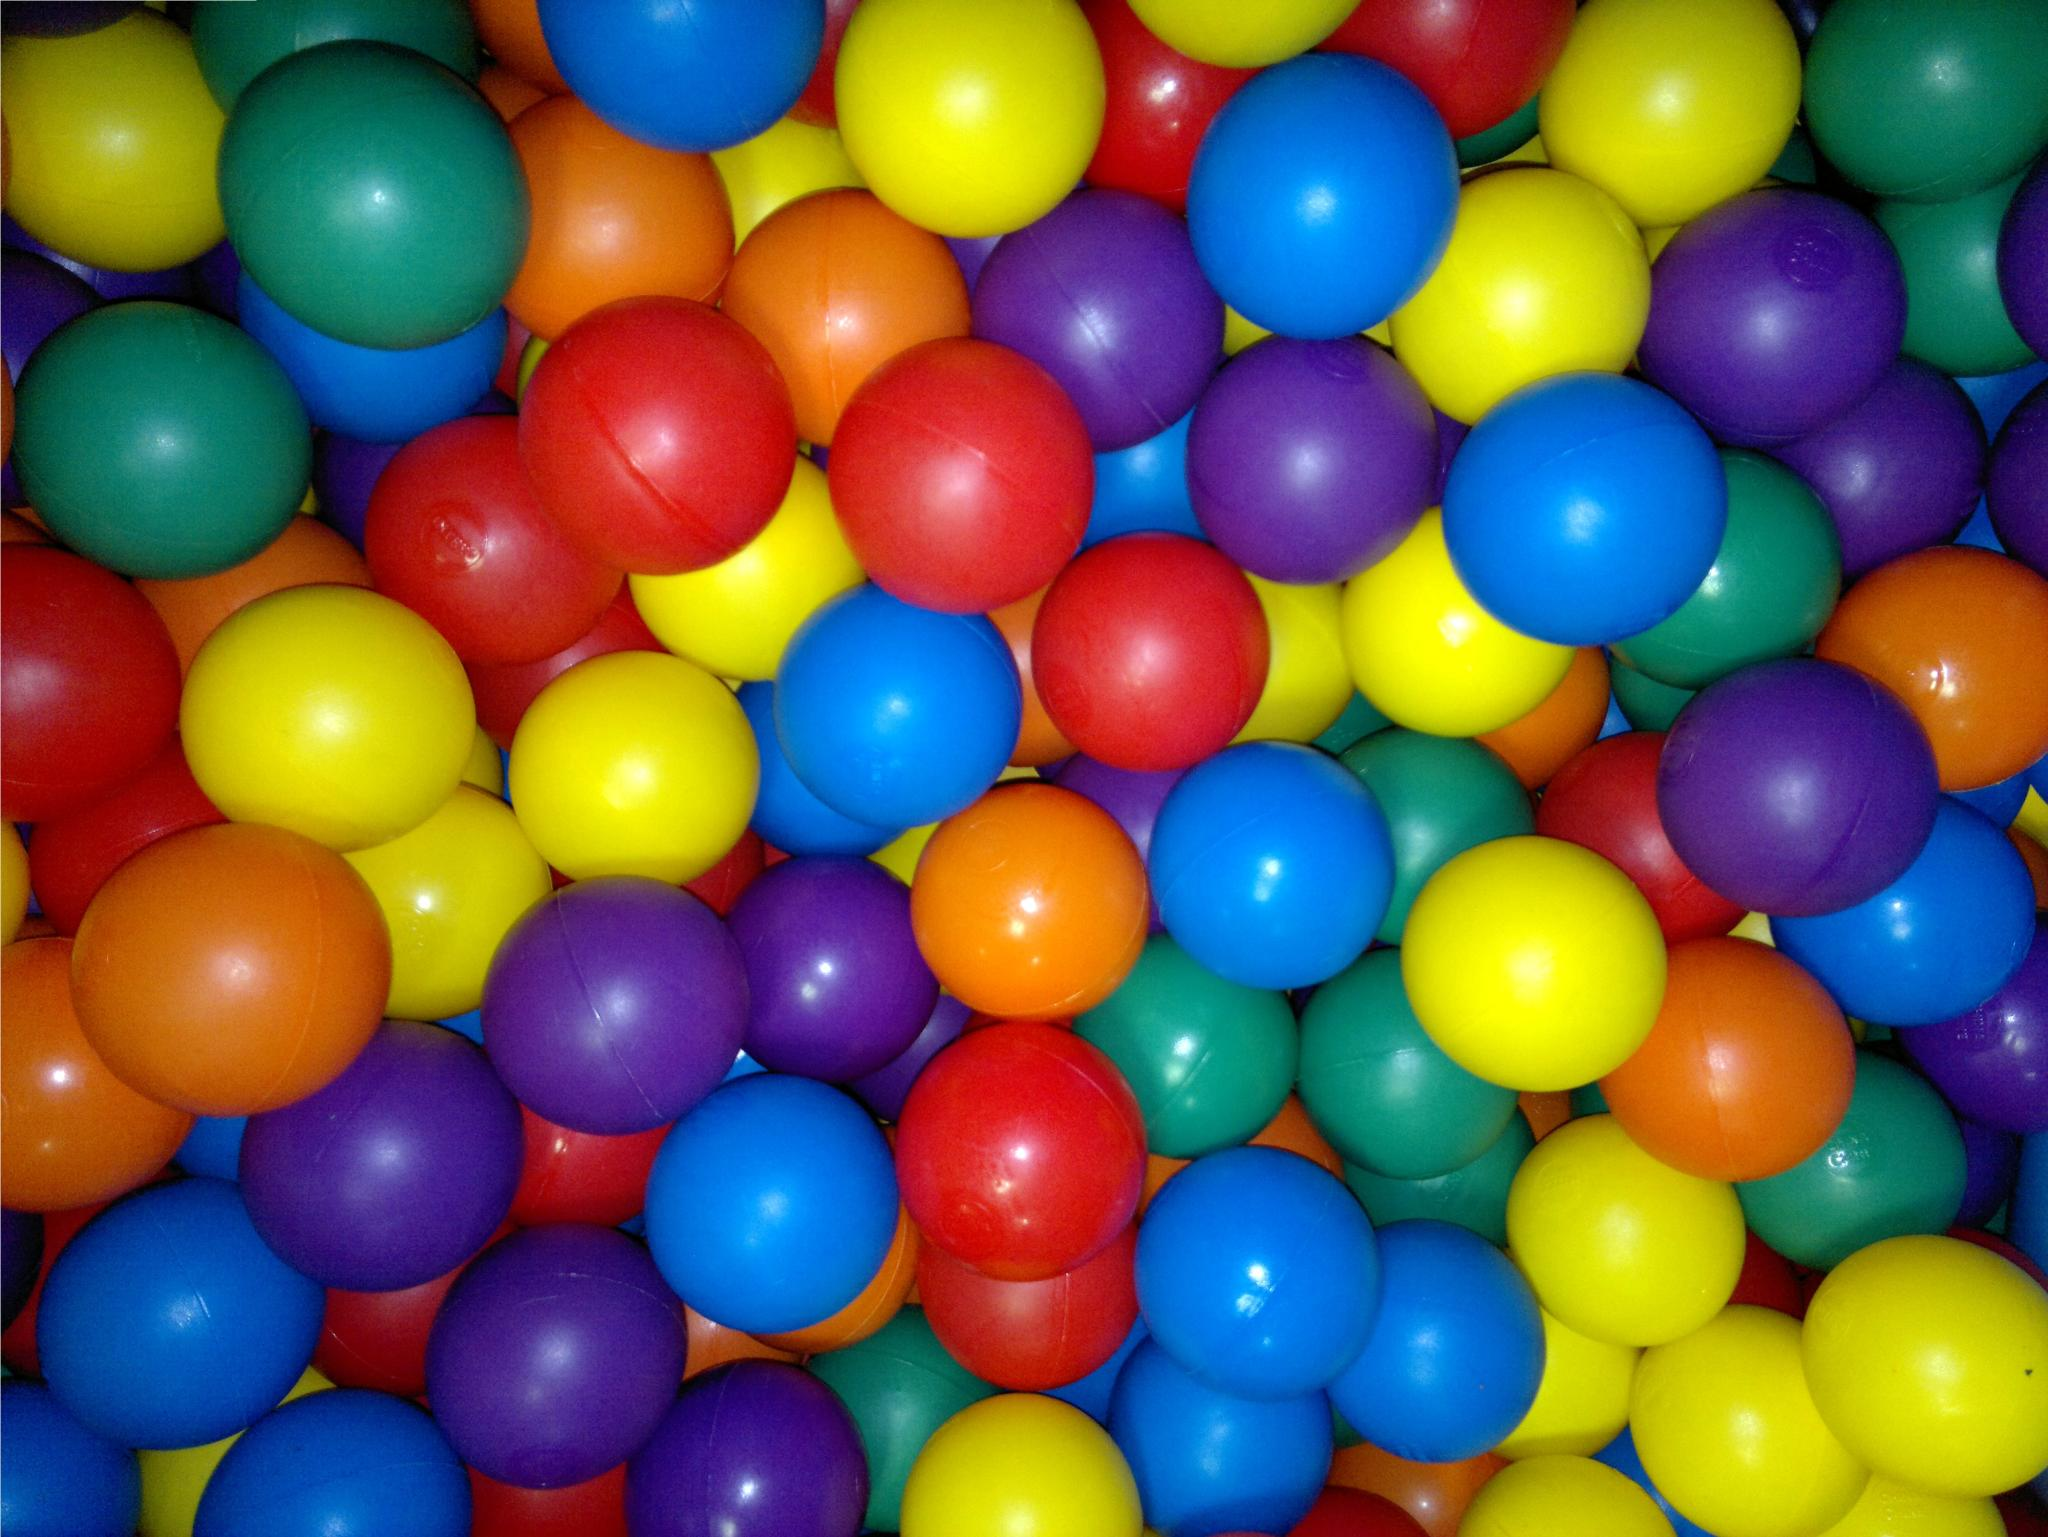 Toy_balls_with_different_Colors.jpg